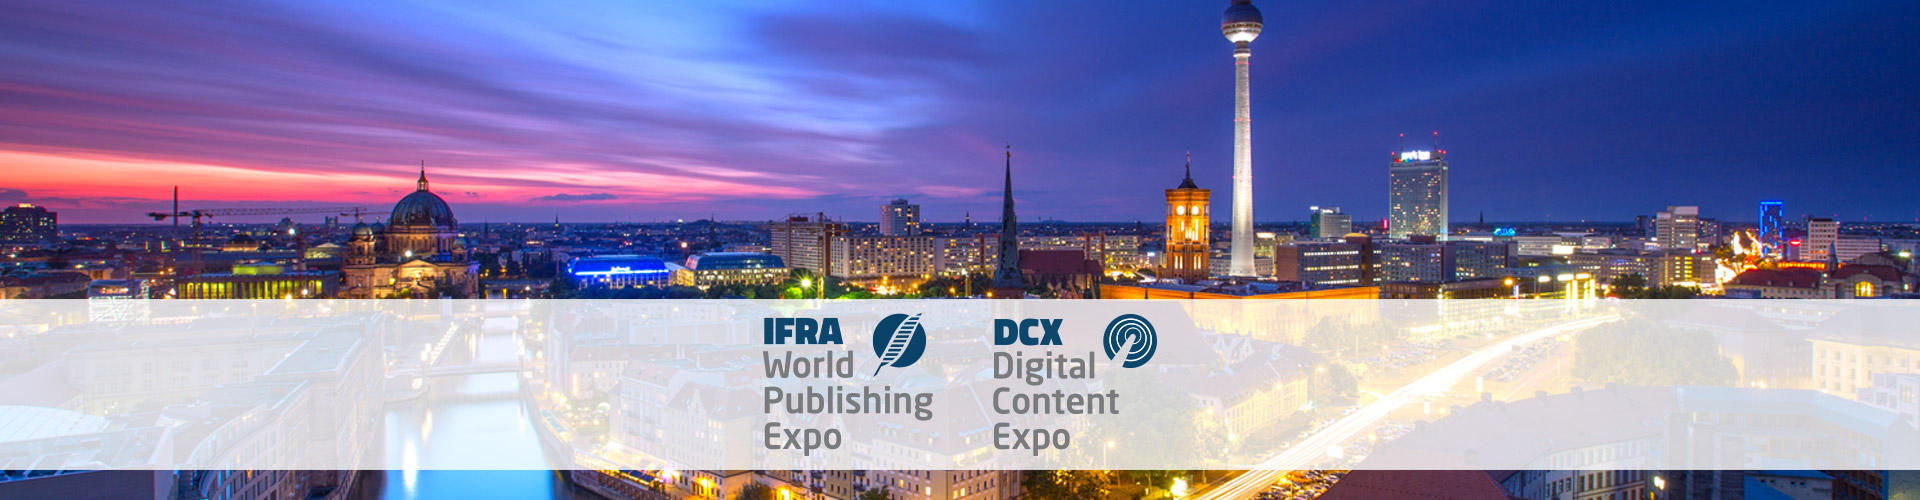 PageSuite are Exhibiting at the WAN IFRA World Publishing Expo & Digital Content Expo!